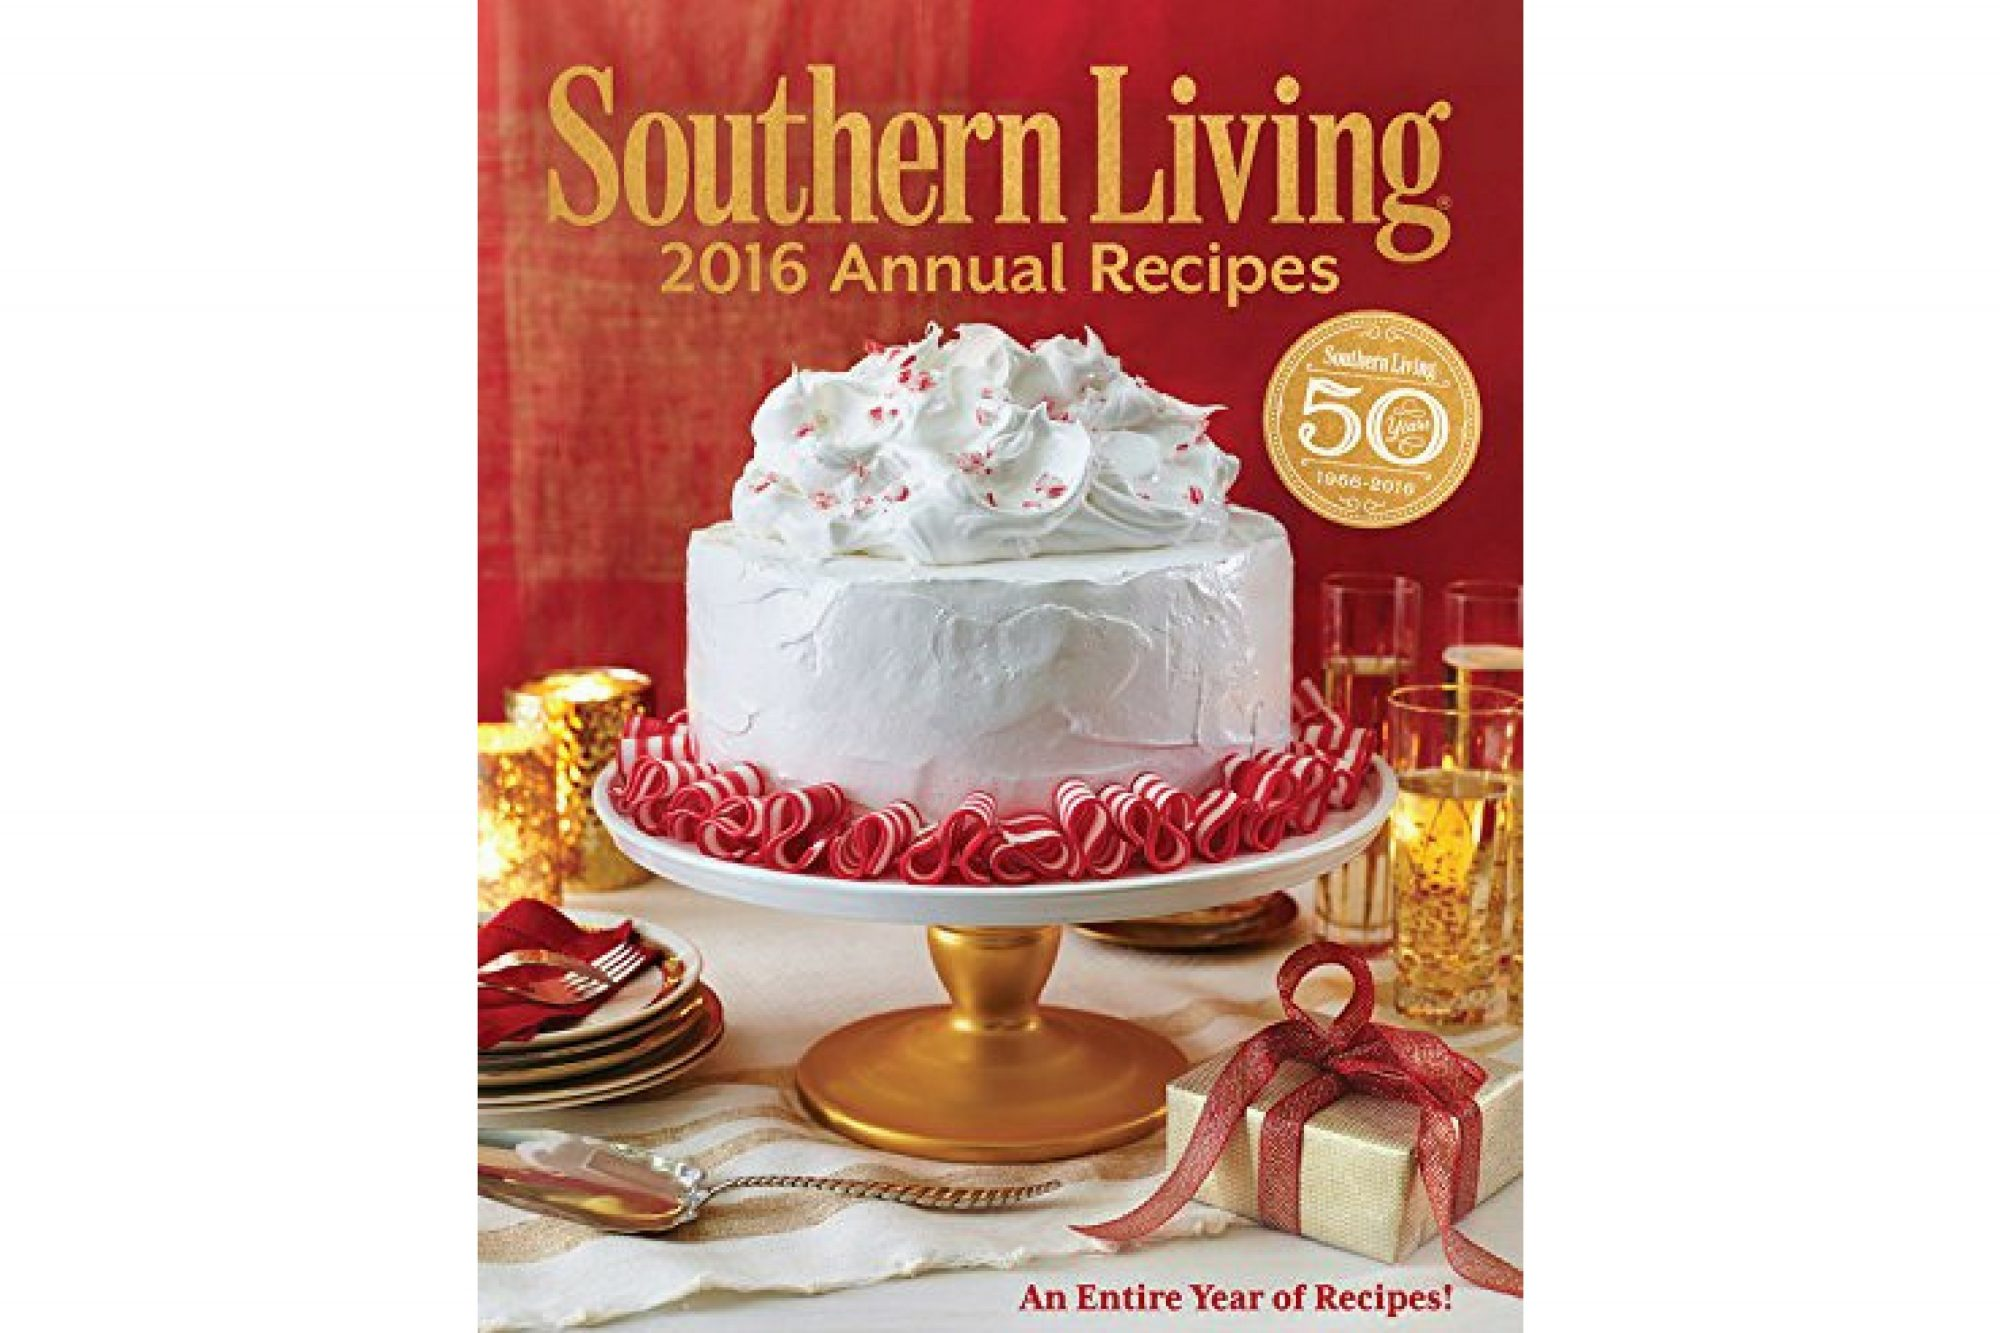 2016 Annual Recipes by Southern Living